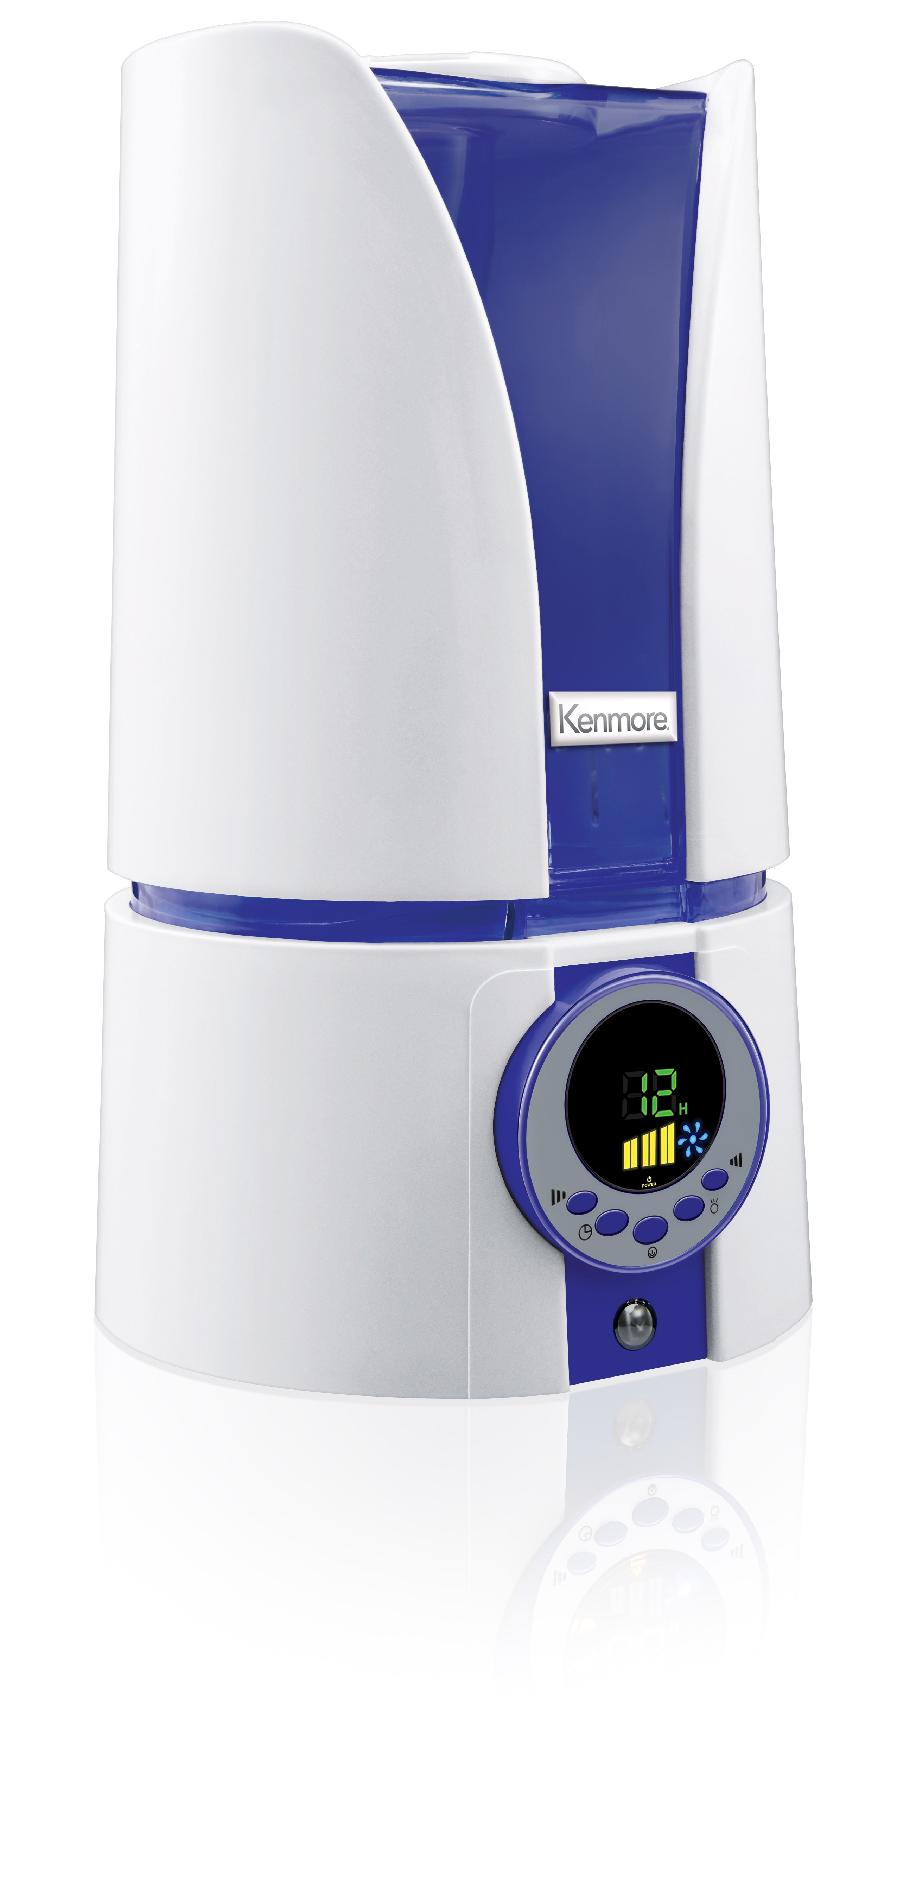 Kenmore Cool Mist Ultrasonic Humidifier 1.1 Gal.